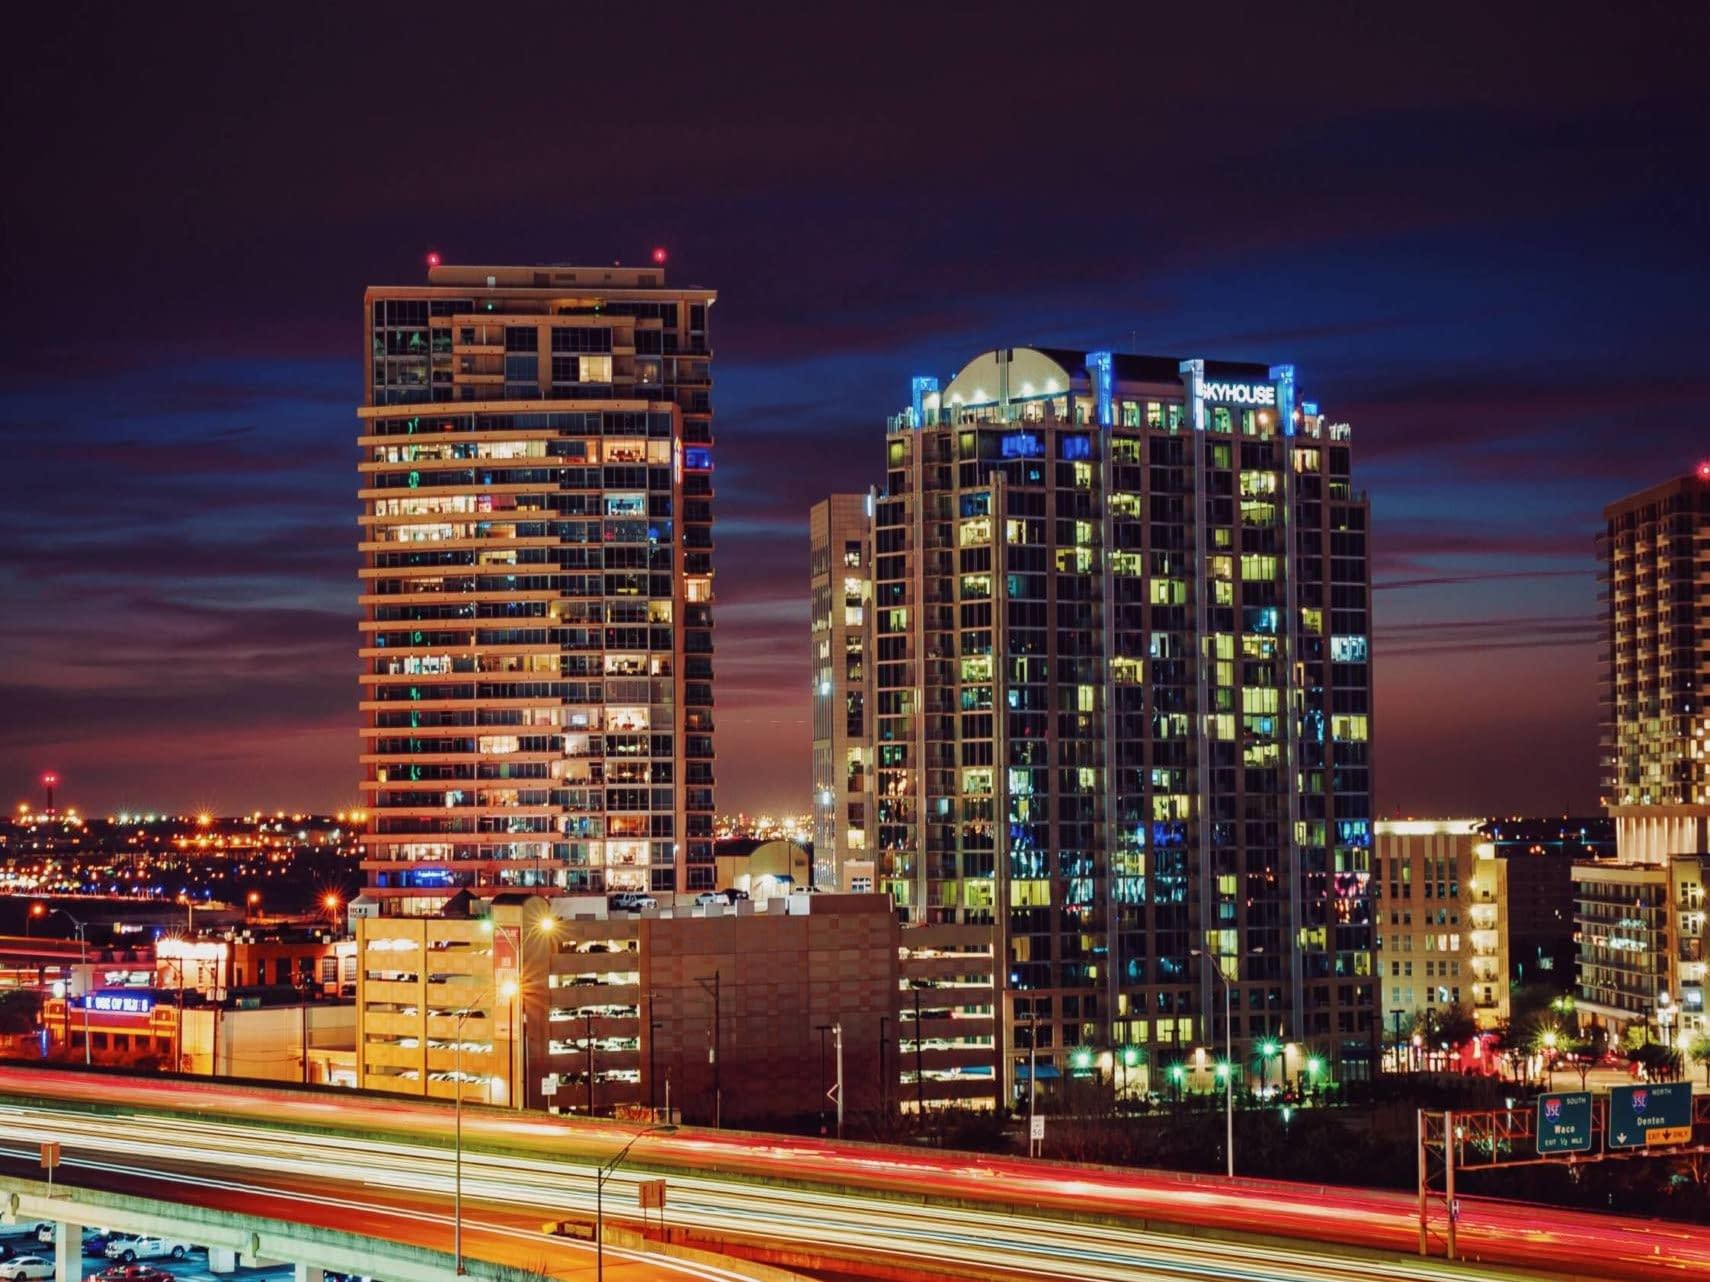 A shot of the Dallas skyline at night.